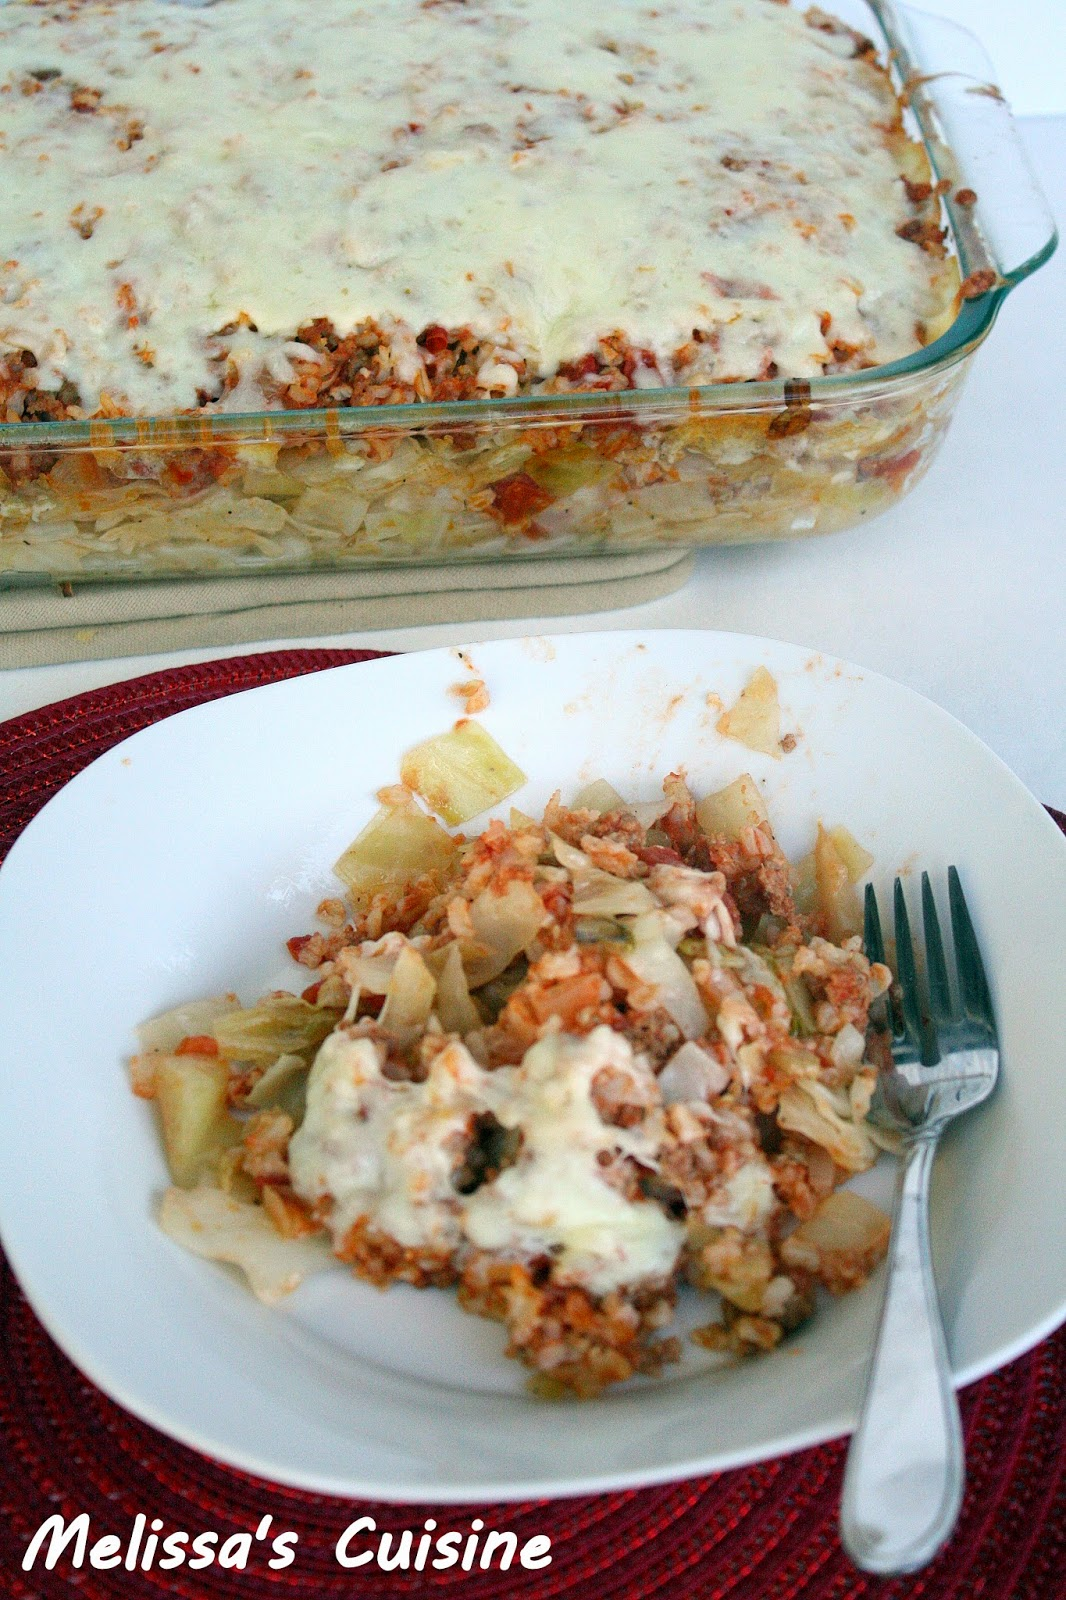 Melissa's Cuisine: Stuffed Cabbage Casserole {Flashback Friday}